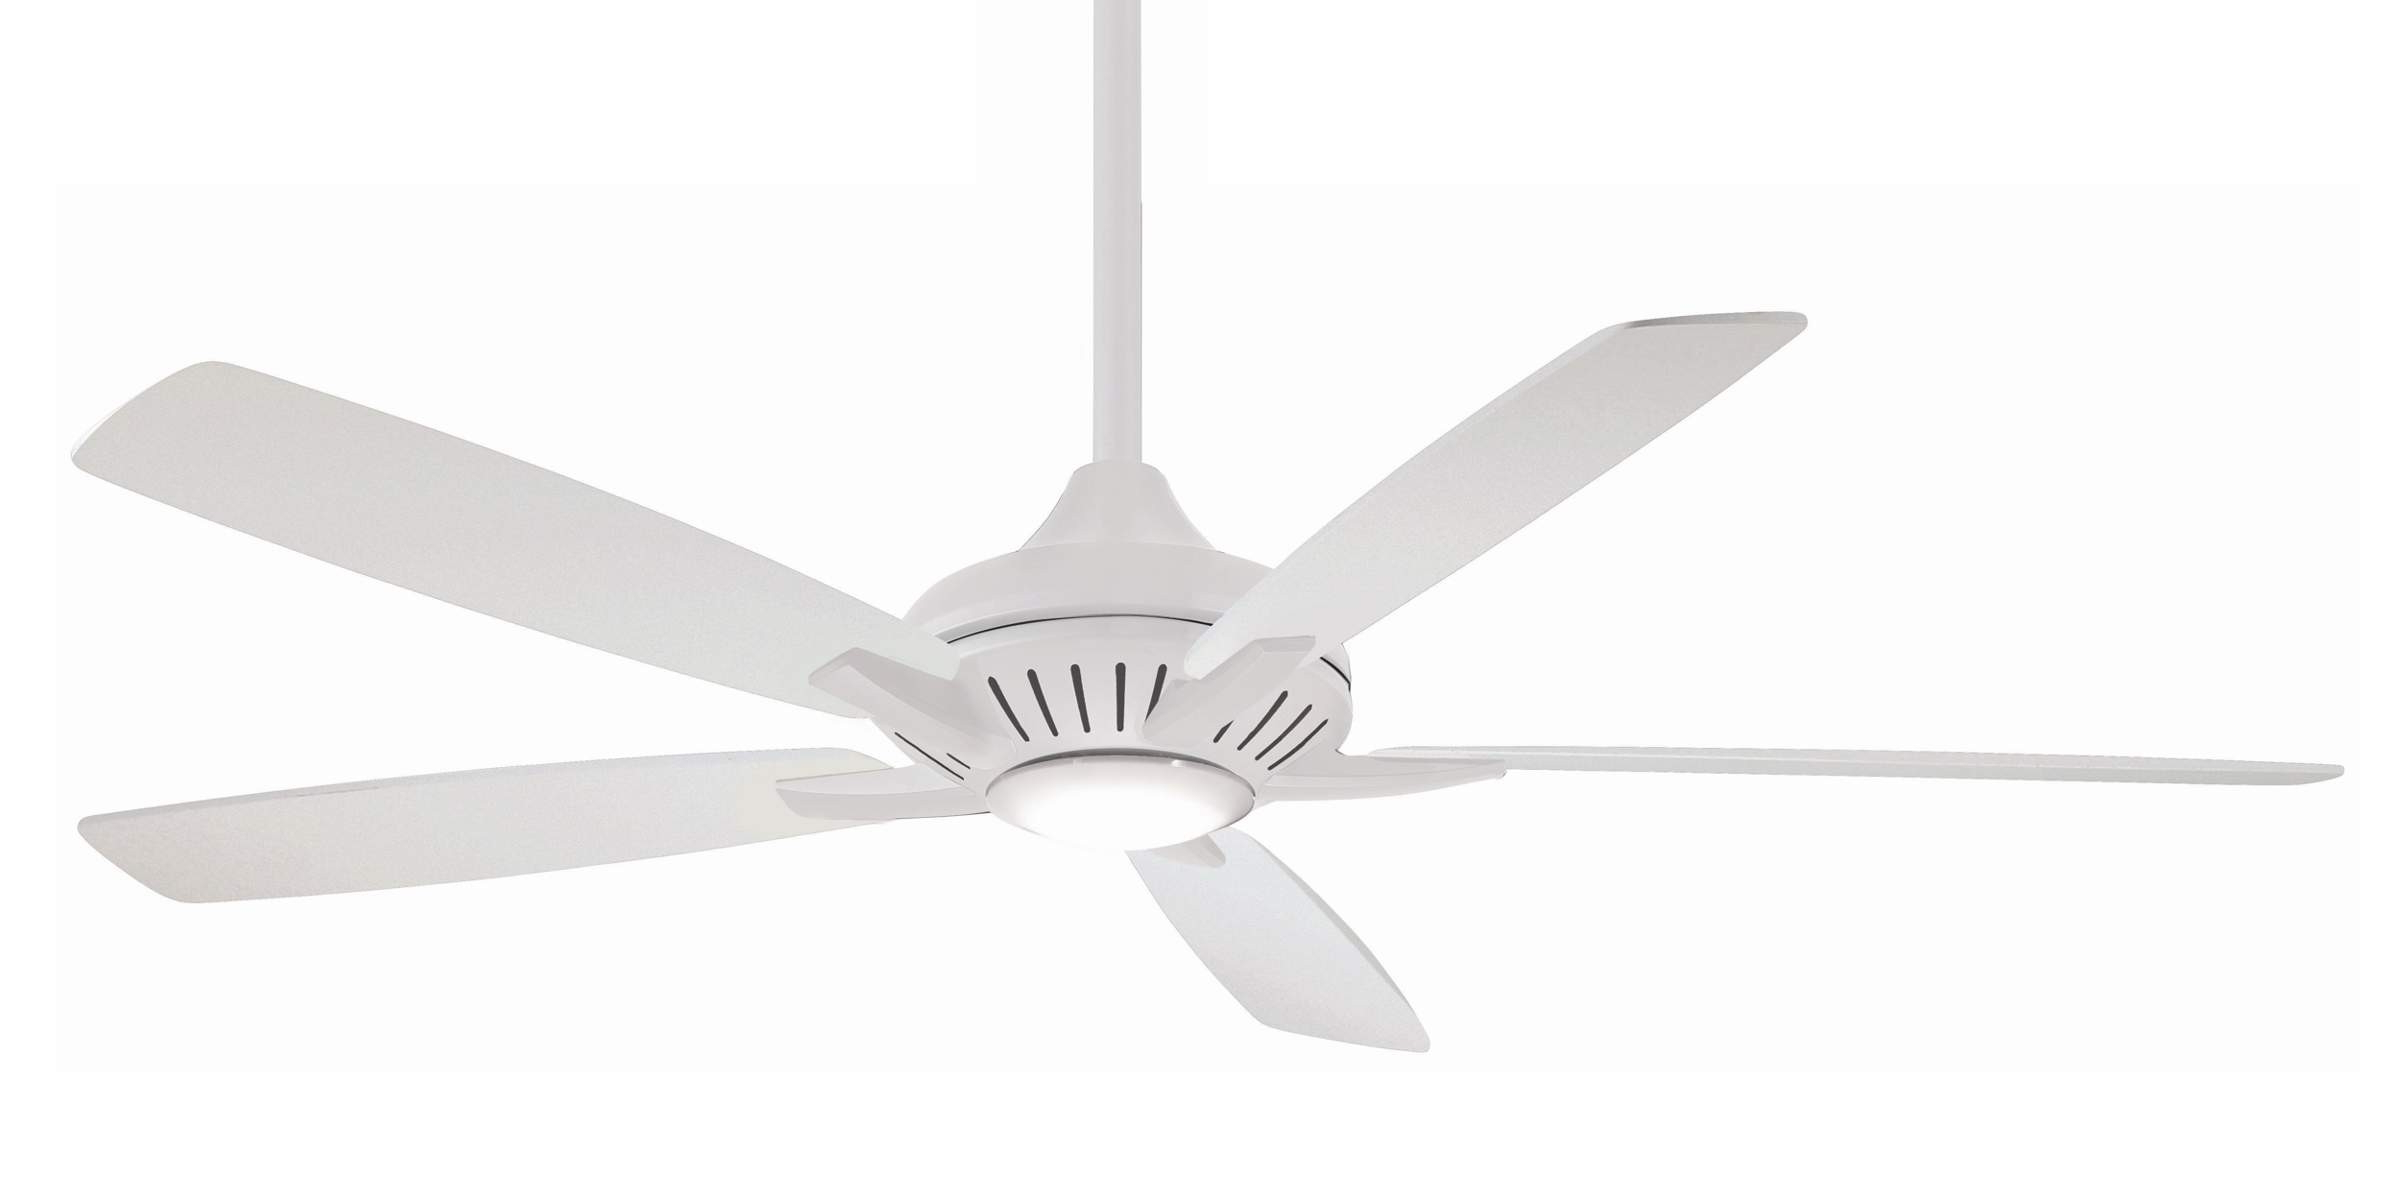 Dyno 5 Blade Ceiling Fans Intended For Most Current Minka Aire F1001 Wh 60 Inch Dyno Xl Ceiling Fan In White (View 9 of 20)